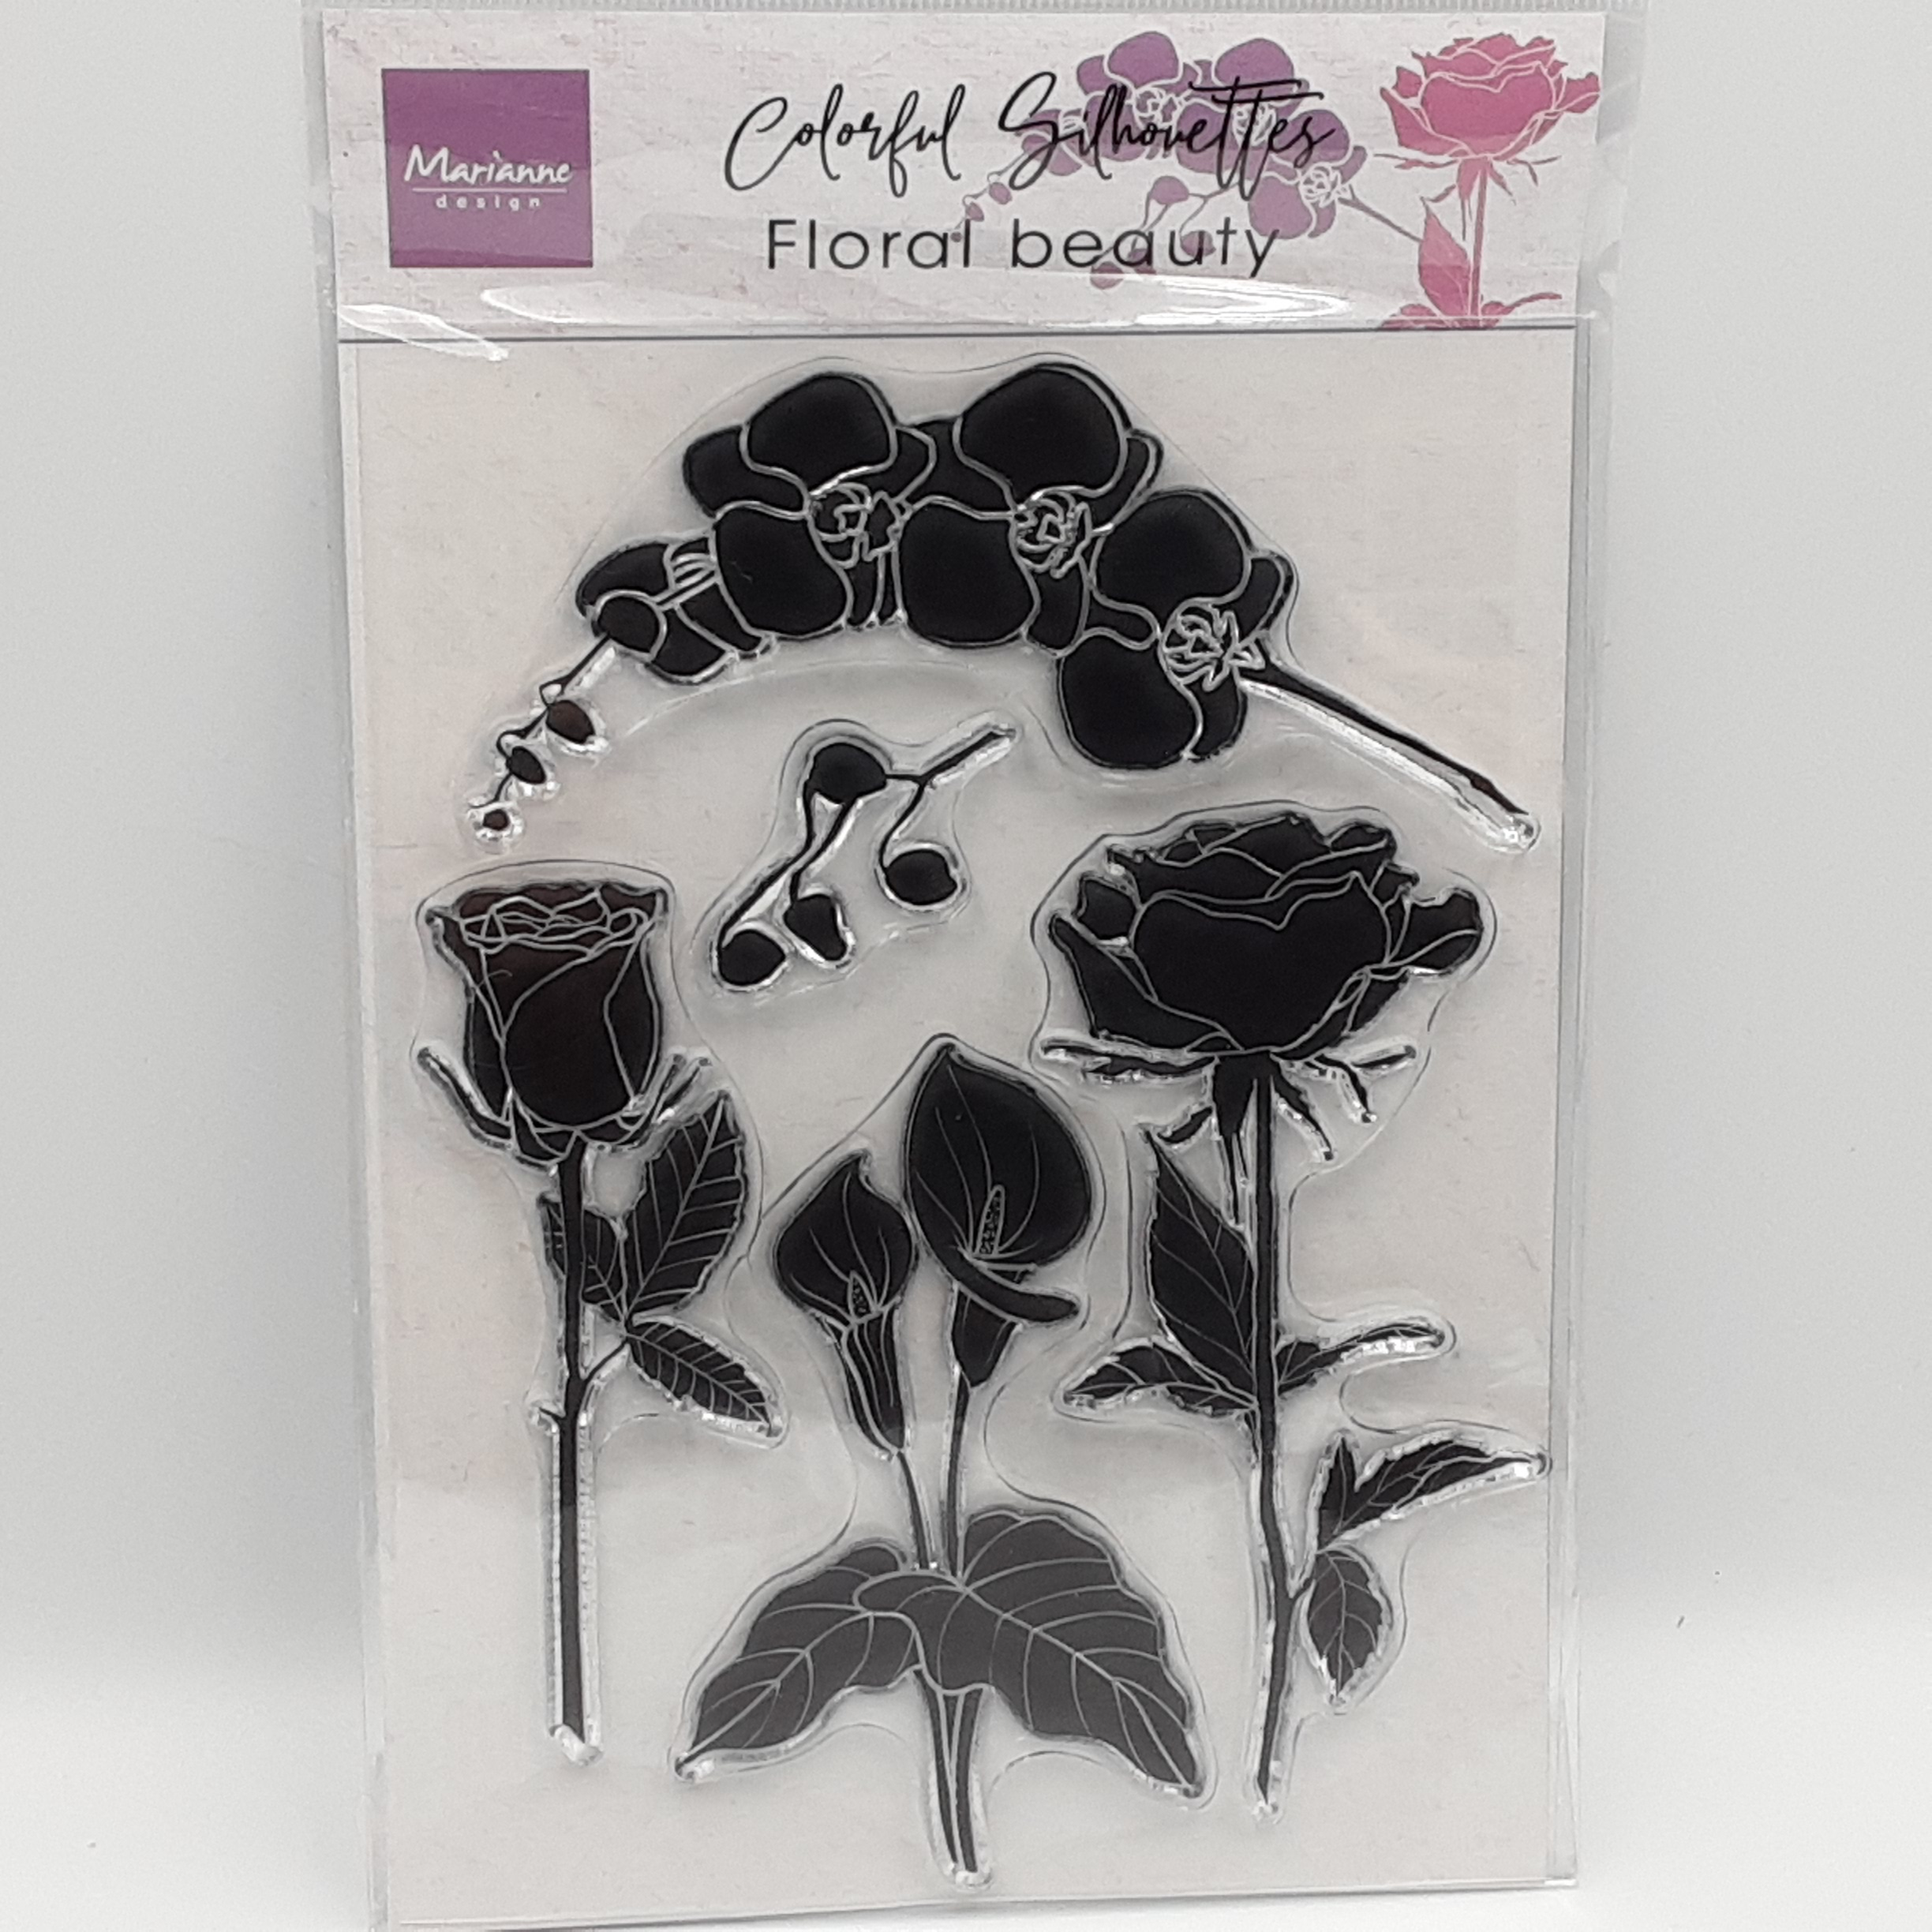 Colorful silhouette floral beauty clear stamp